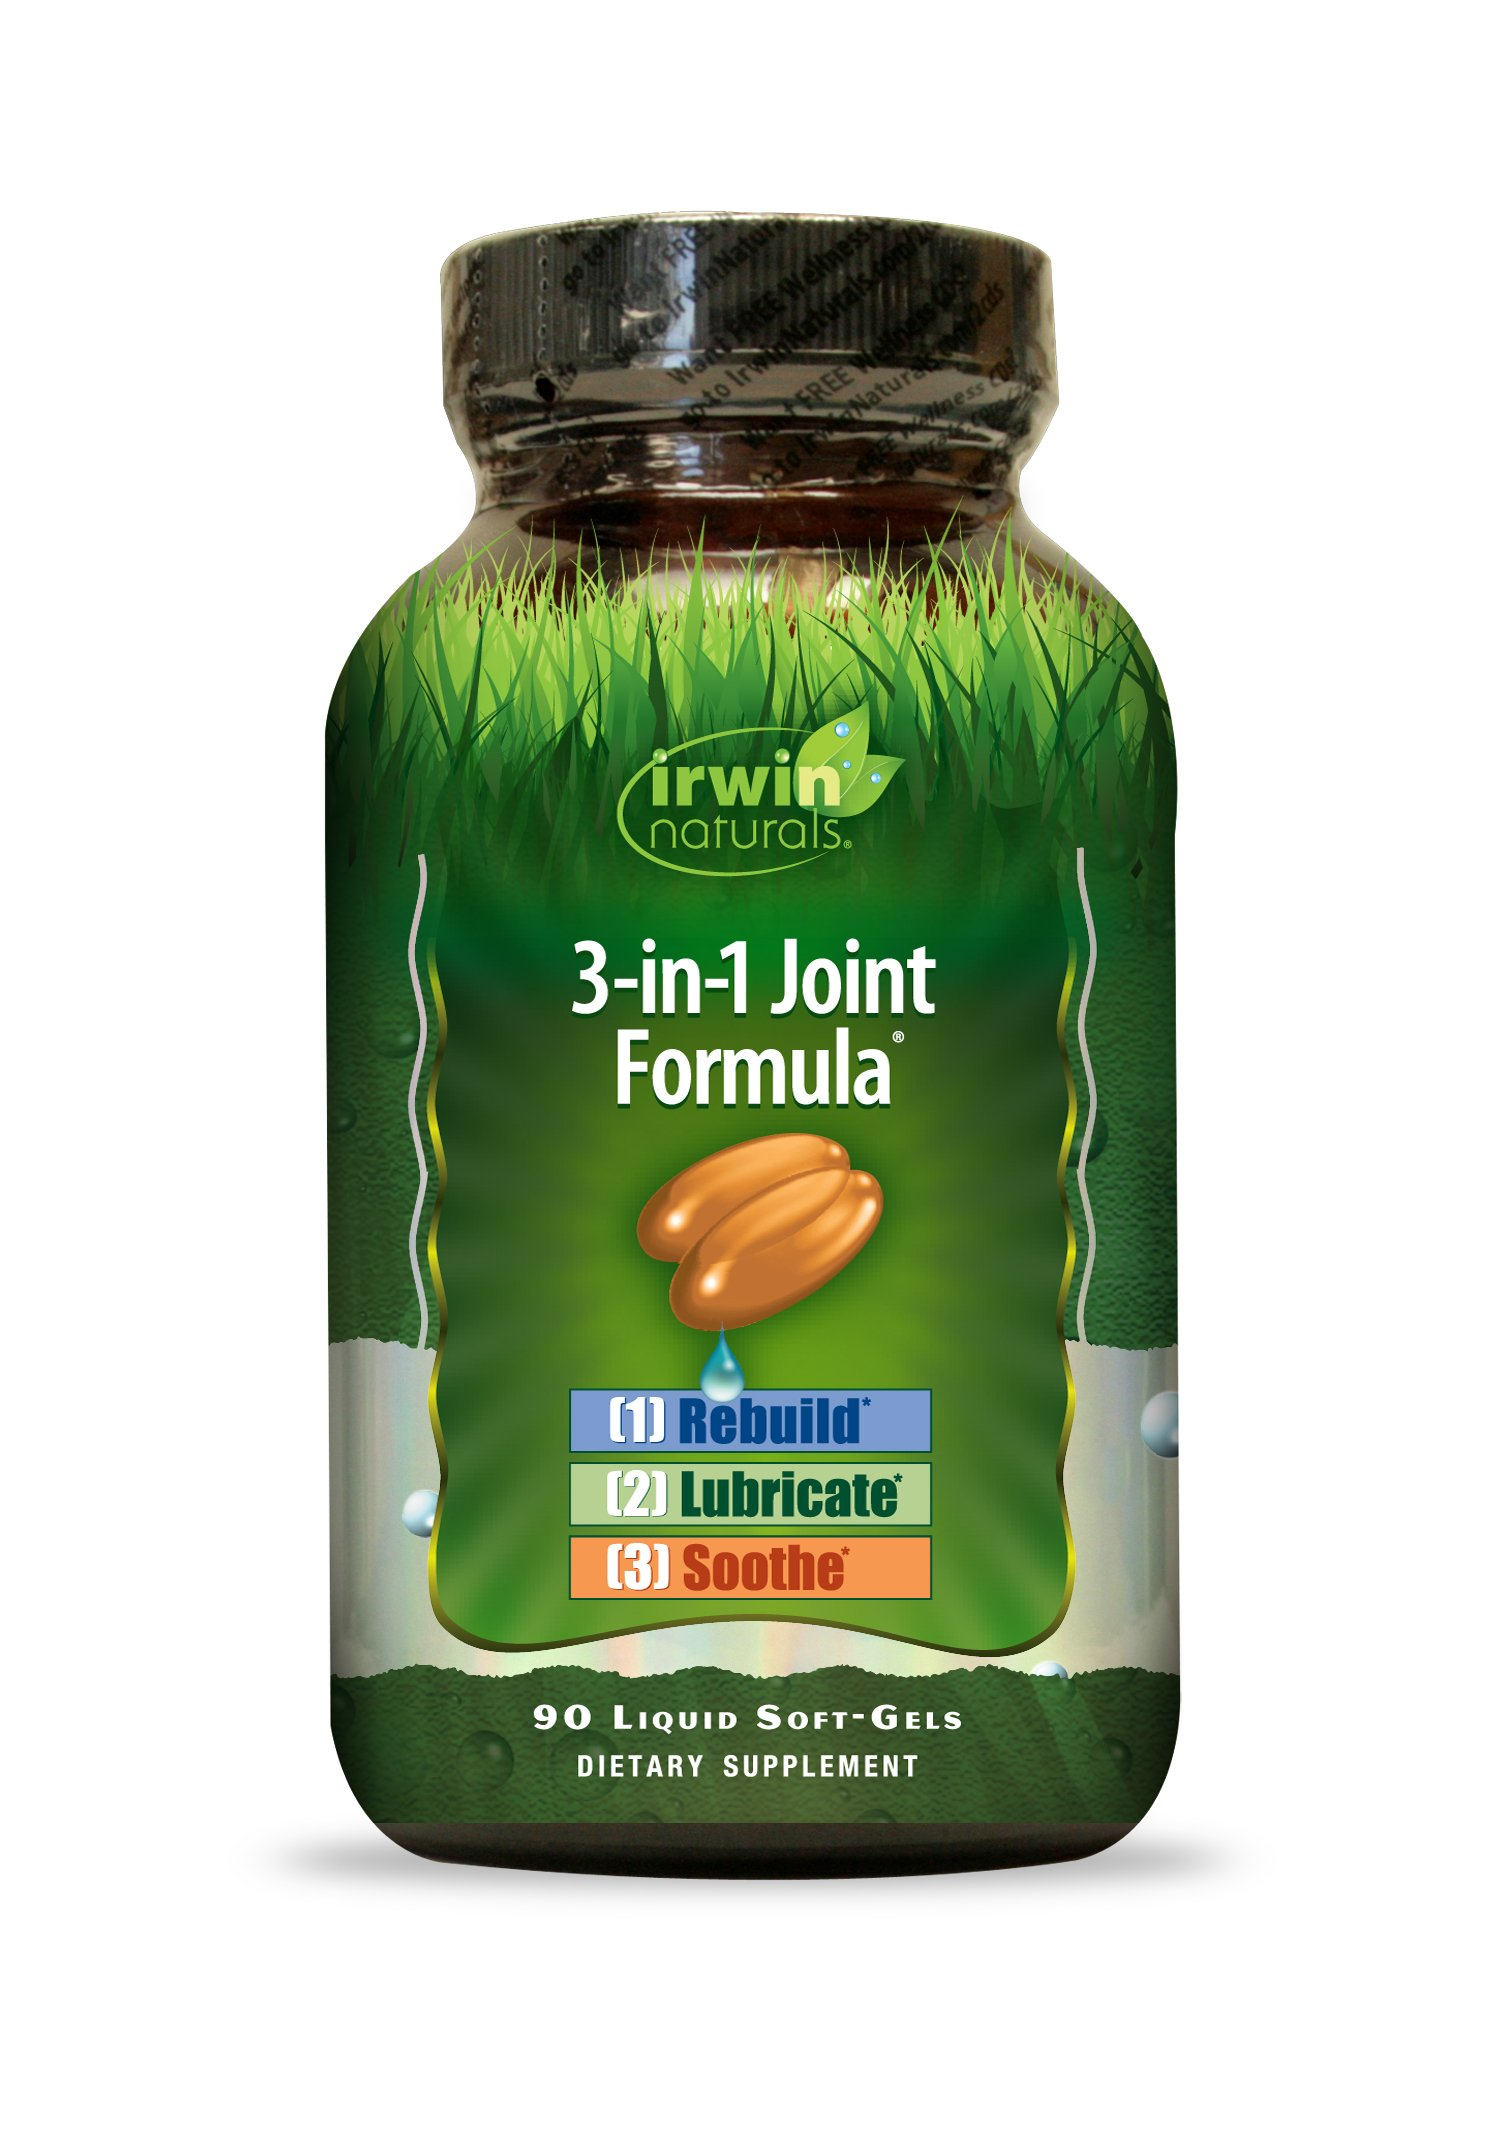 Irwin Naturals 3-in-1 Joint Formula - Powerful Joint Support Supplement with Glucosamine, Chondroitin, Turmeric & Boswellia - 90 Liquid Softgels by Irwin Naturals